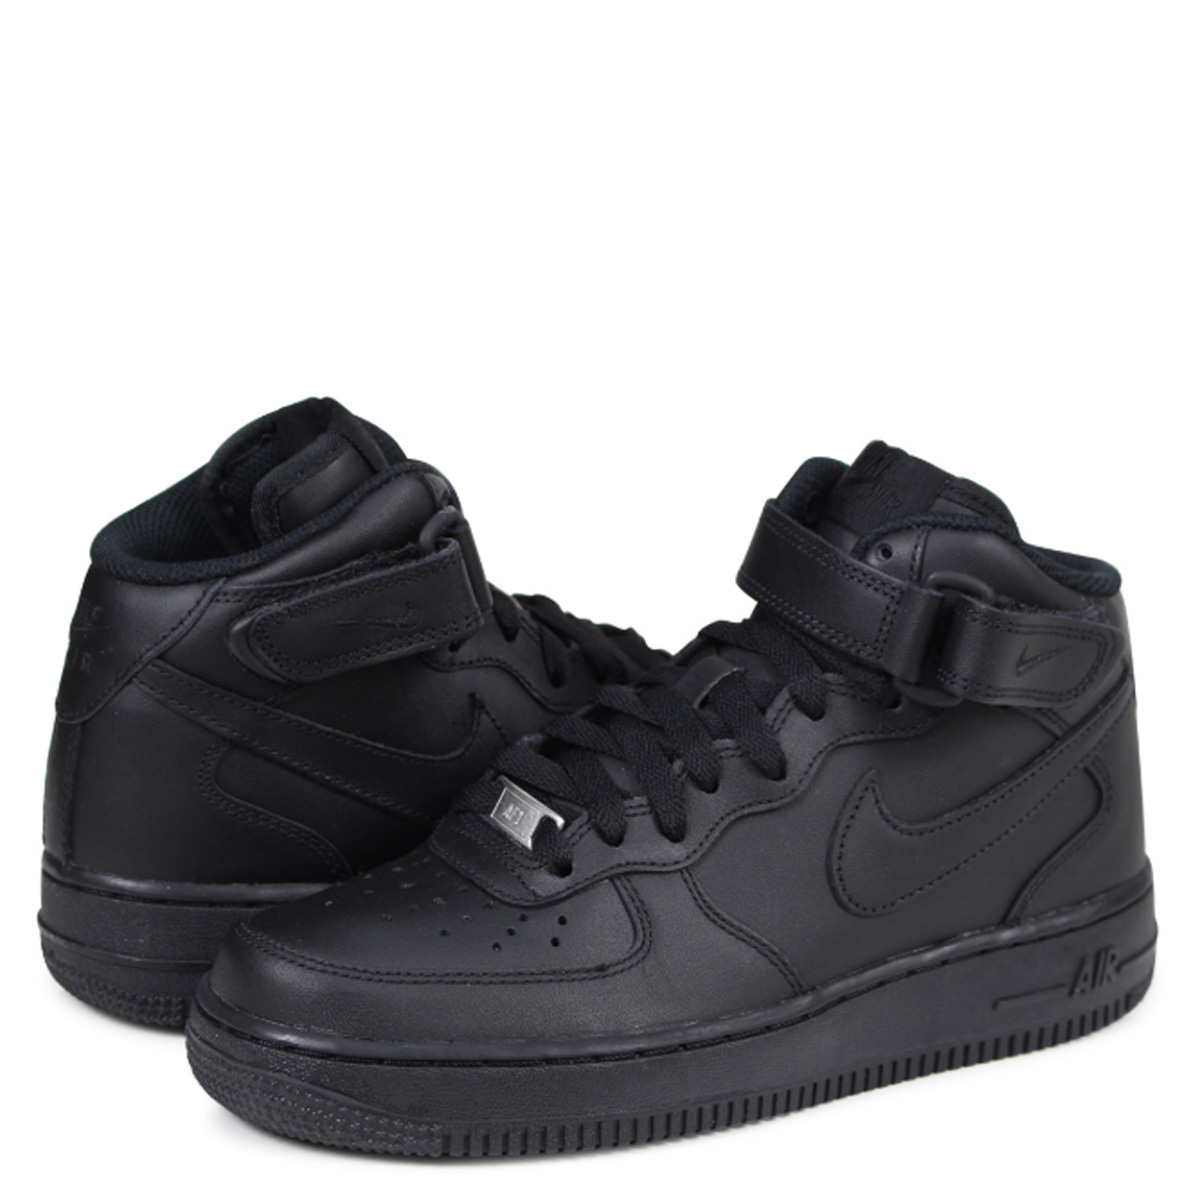 huge selection of 0fc5c 0af2b Categories. « All Categories · Shoes · Women s Shoes · Sneakers · NIKE Nike  Air Force sneakers Womens WMNS AIR FORCE 1 MID ...